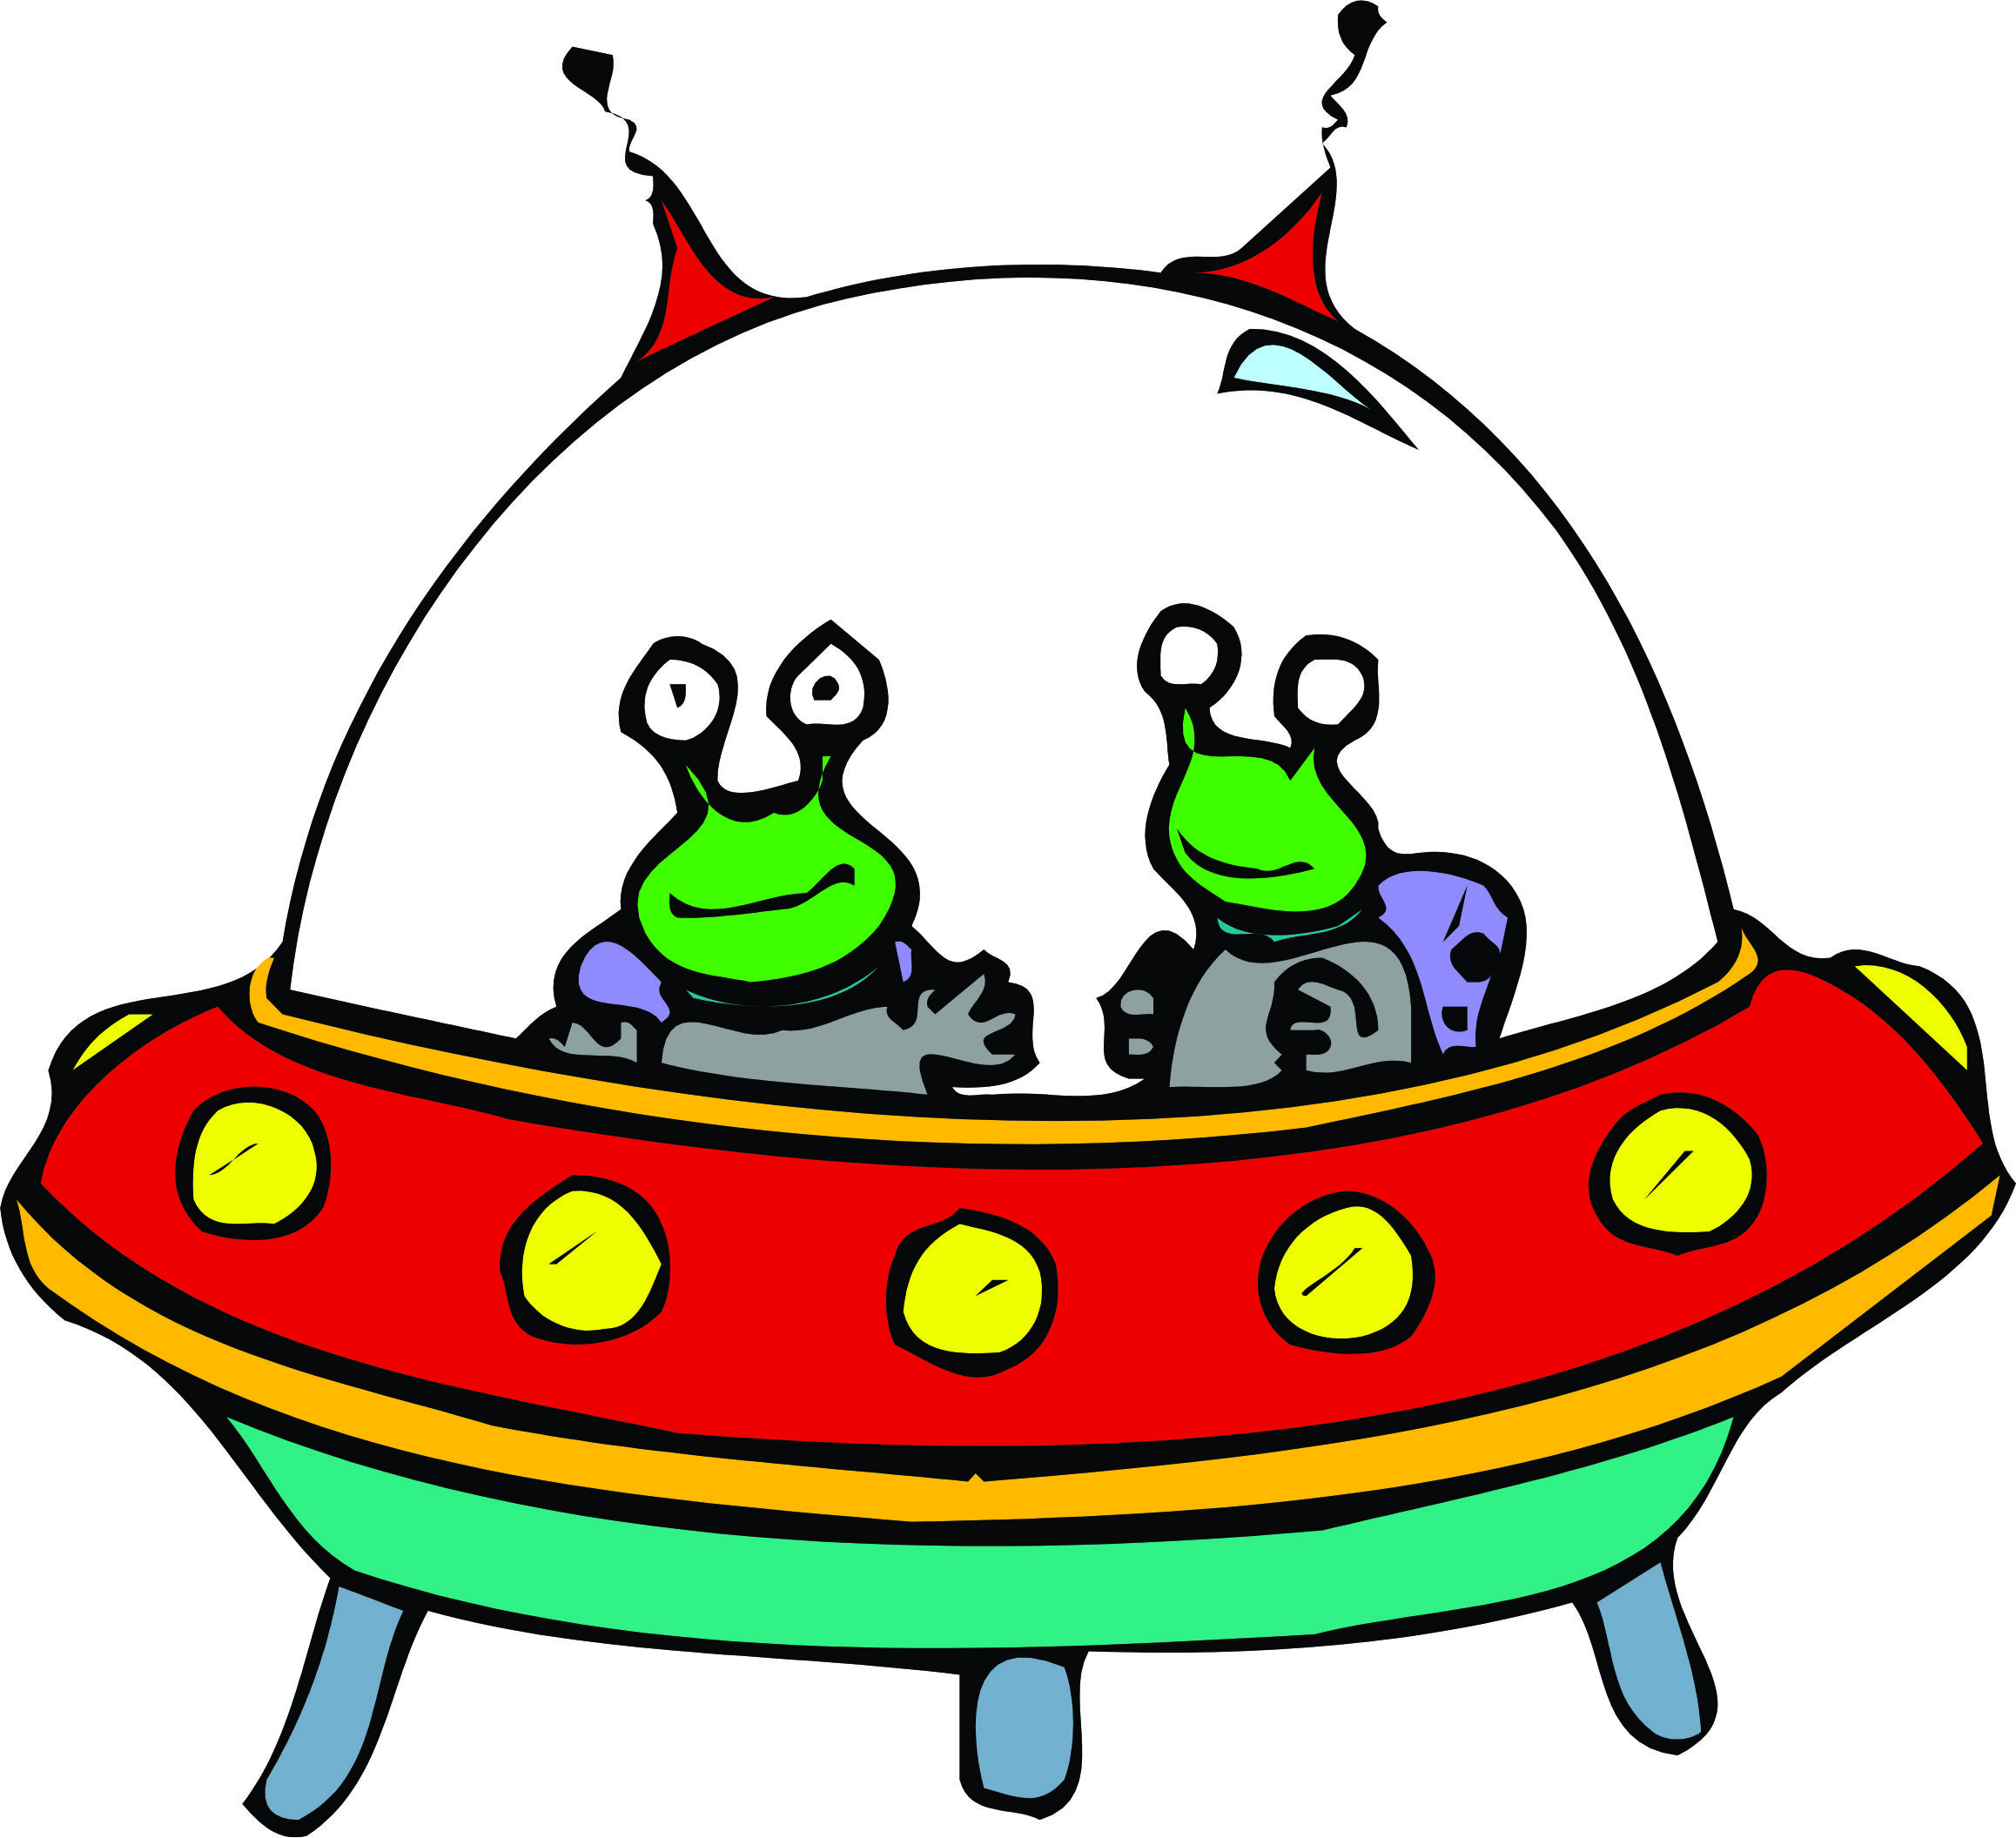 Sci Fi clipart cute alien spaceship #8